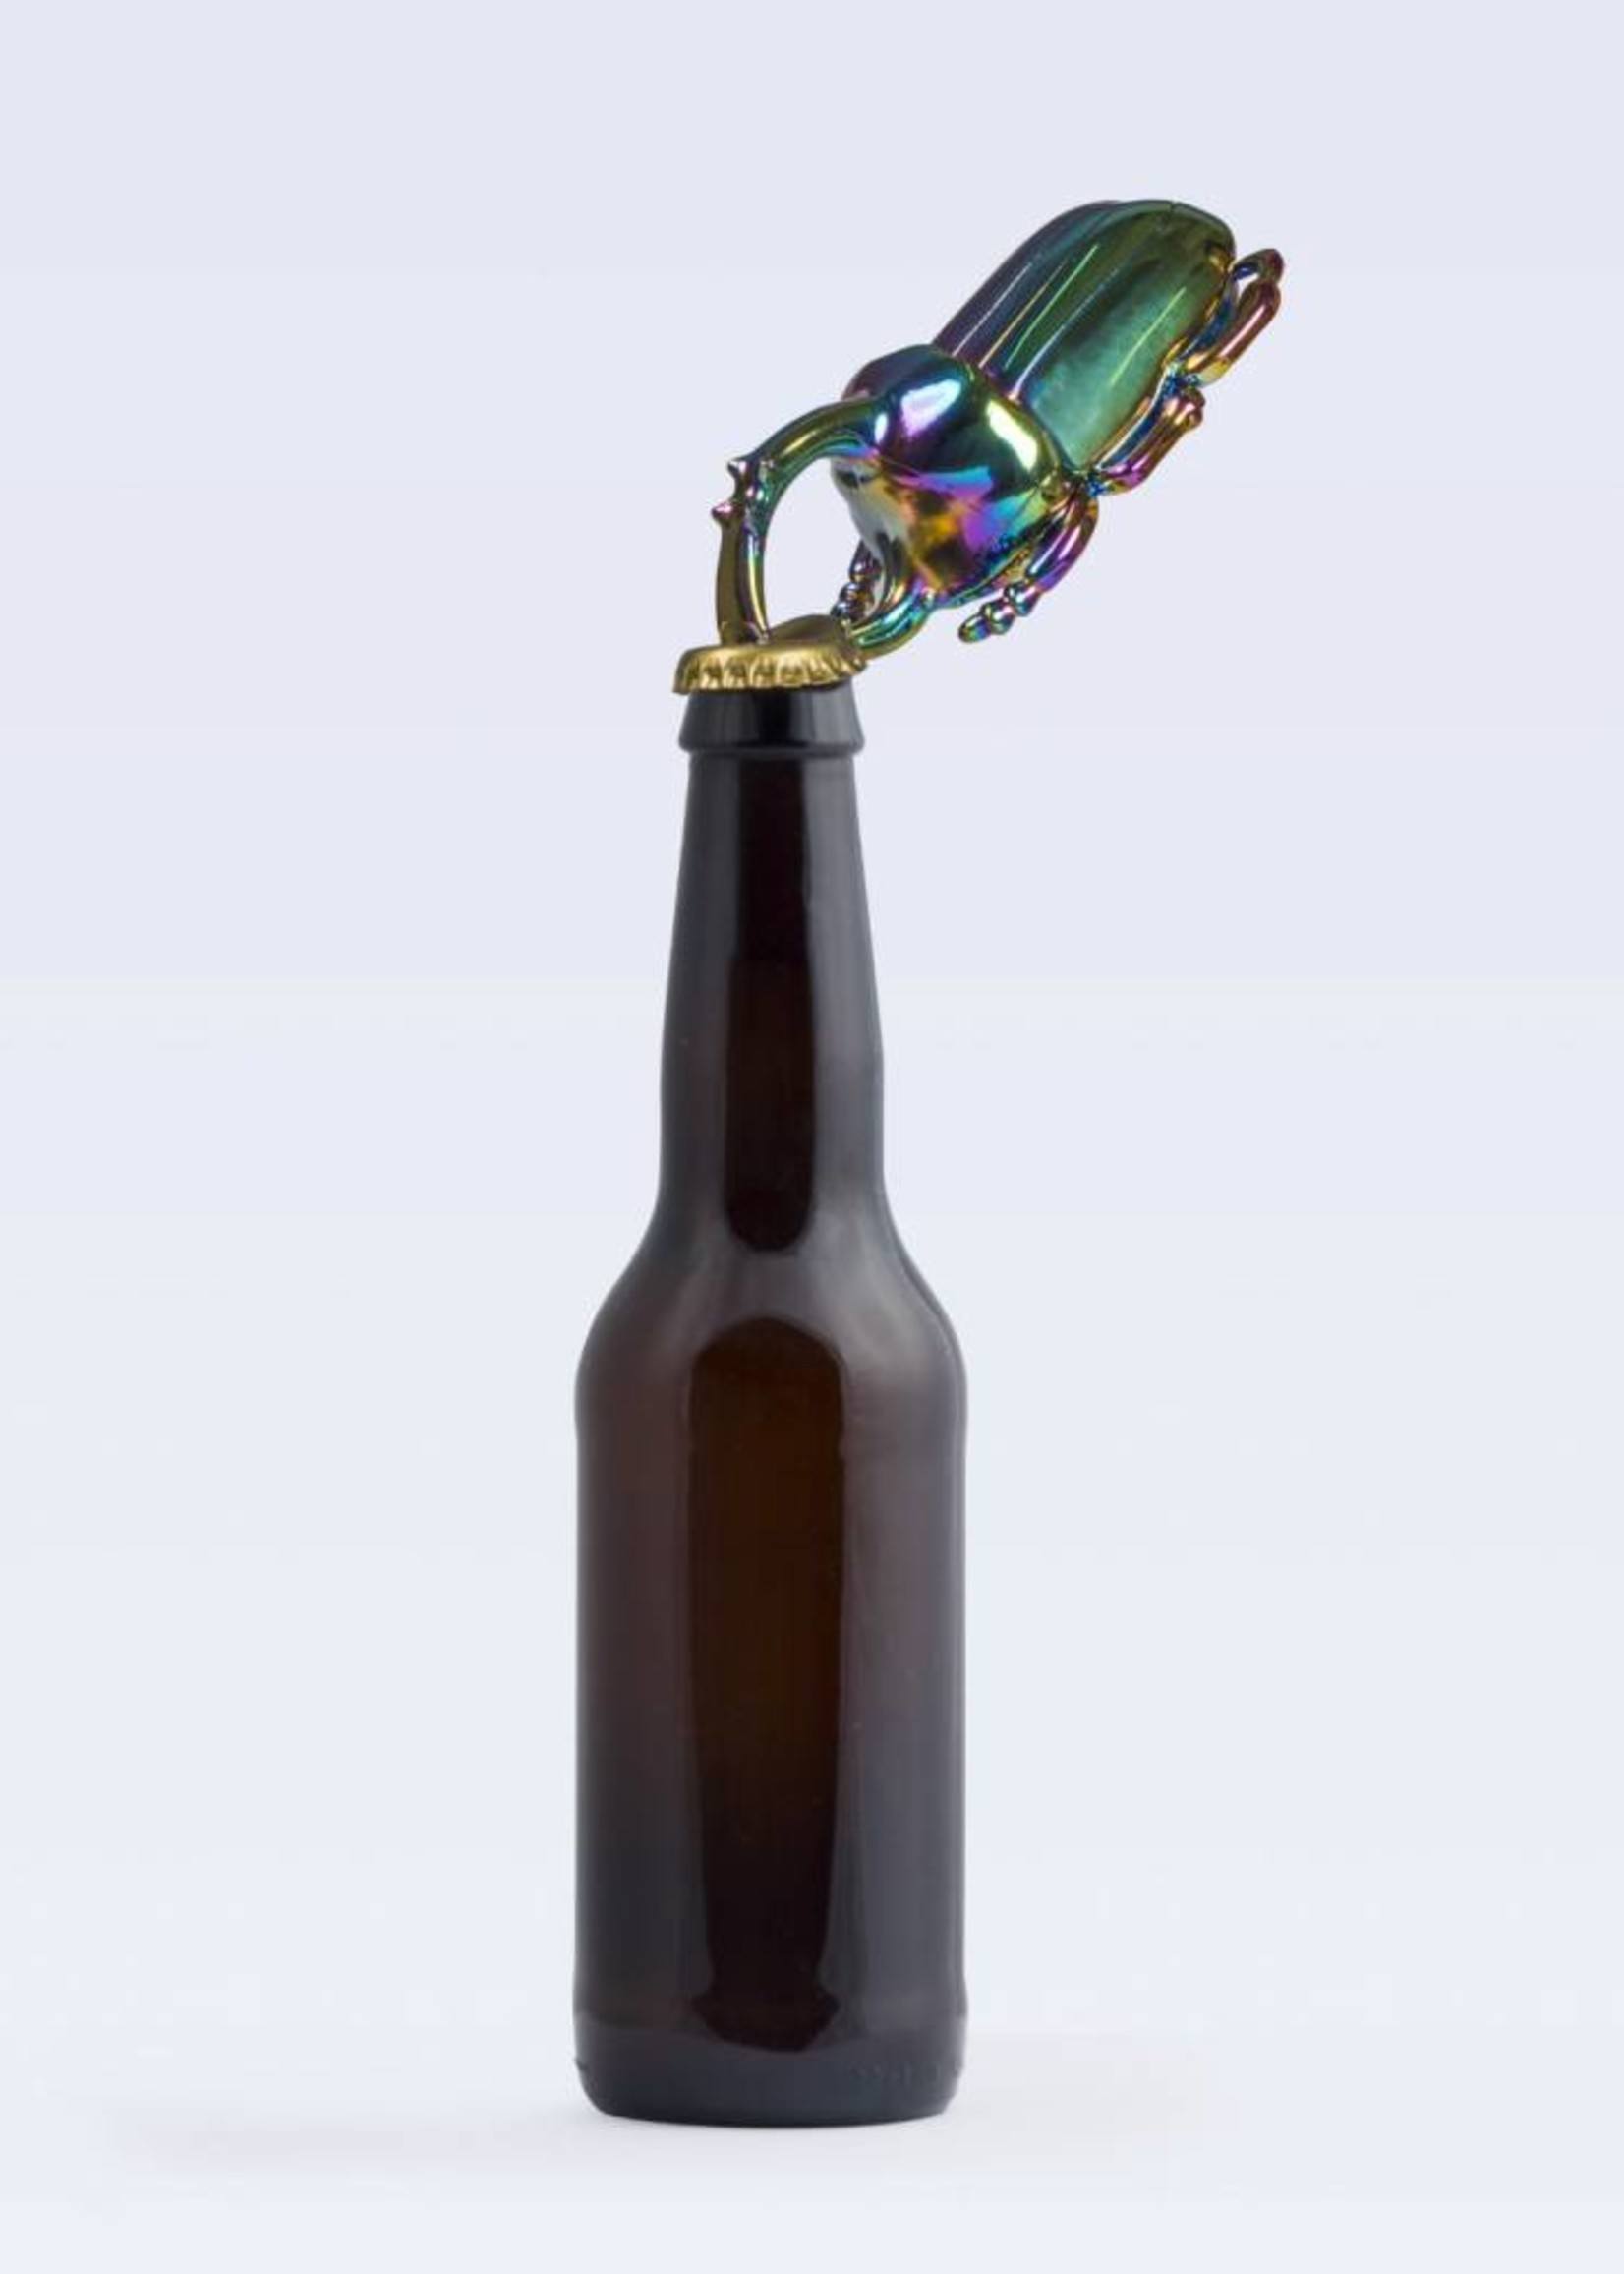 DOIY Insectum bottle opener